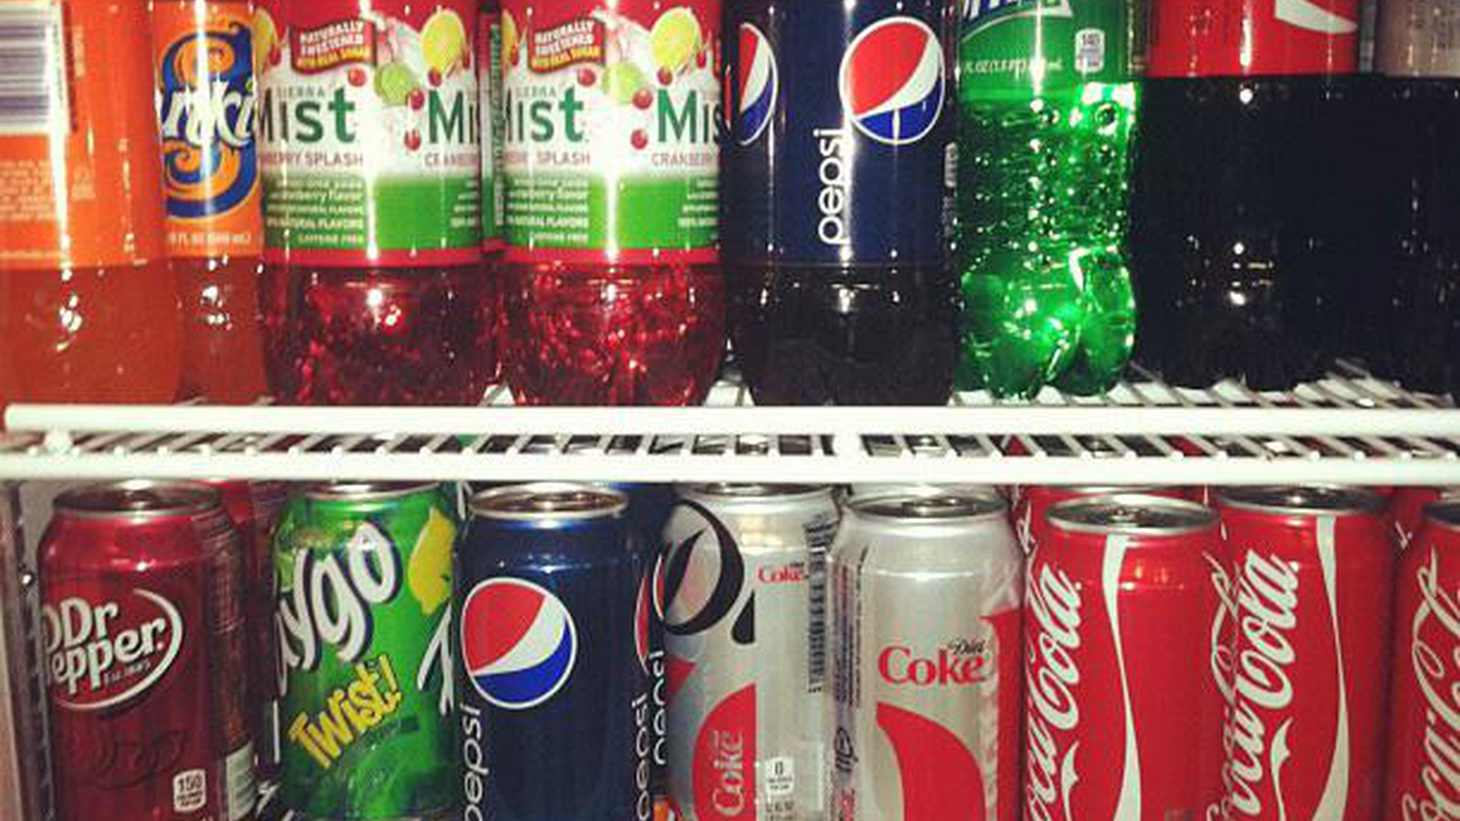 Coke, Pepsi and other beverage companies are fighting a proposed mandate in California for labels warning that sugary soft drinks increase the risk of childhood obesity.